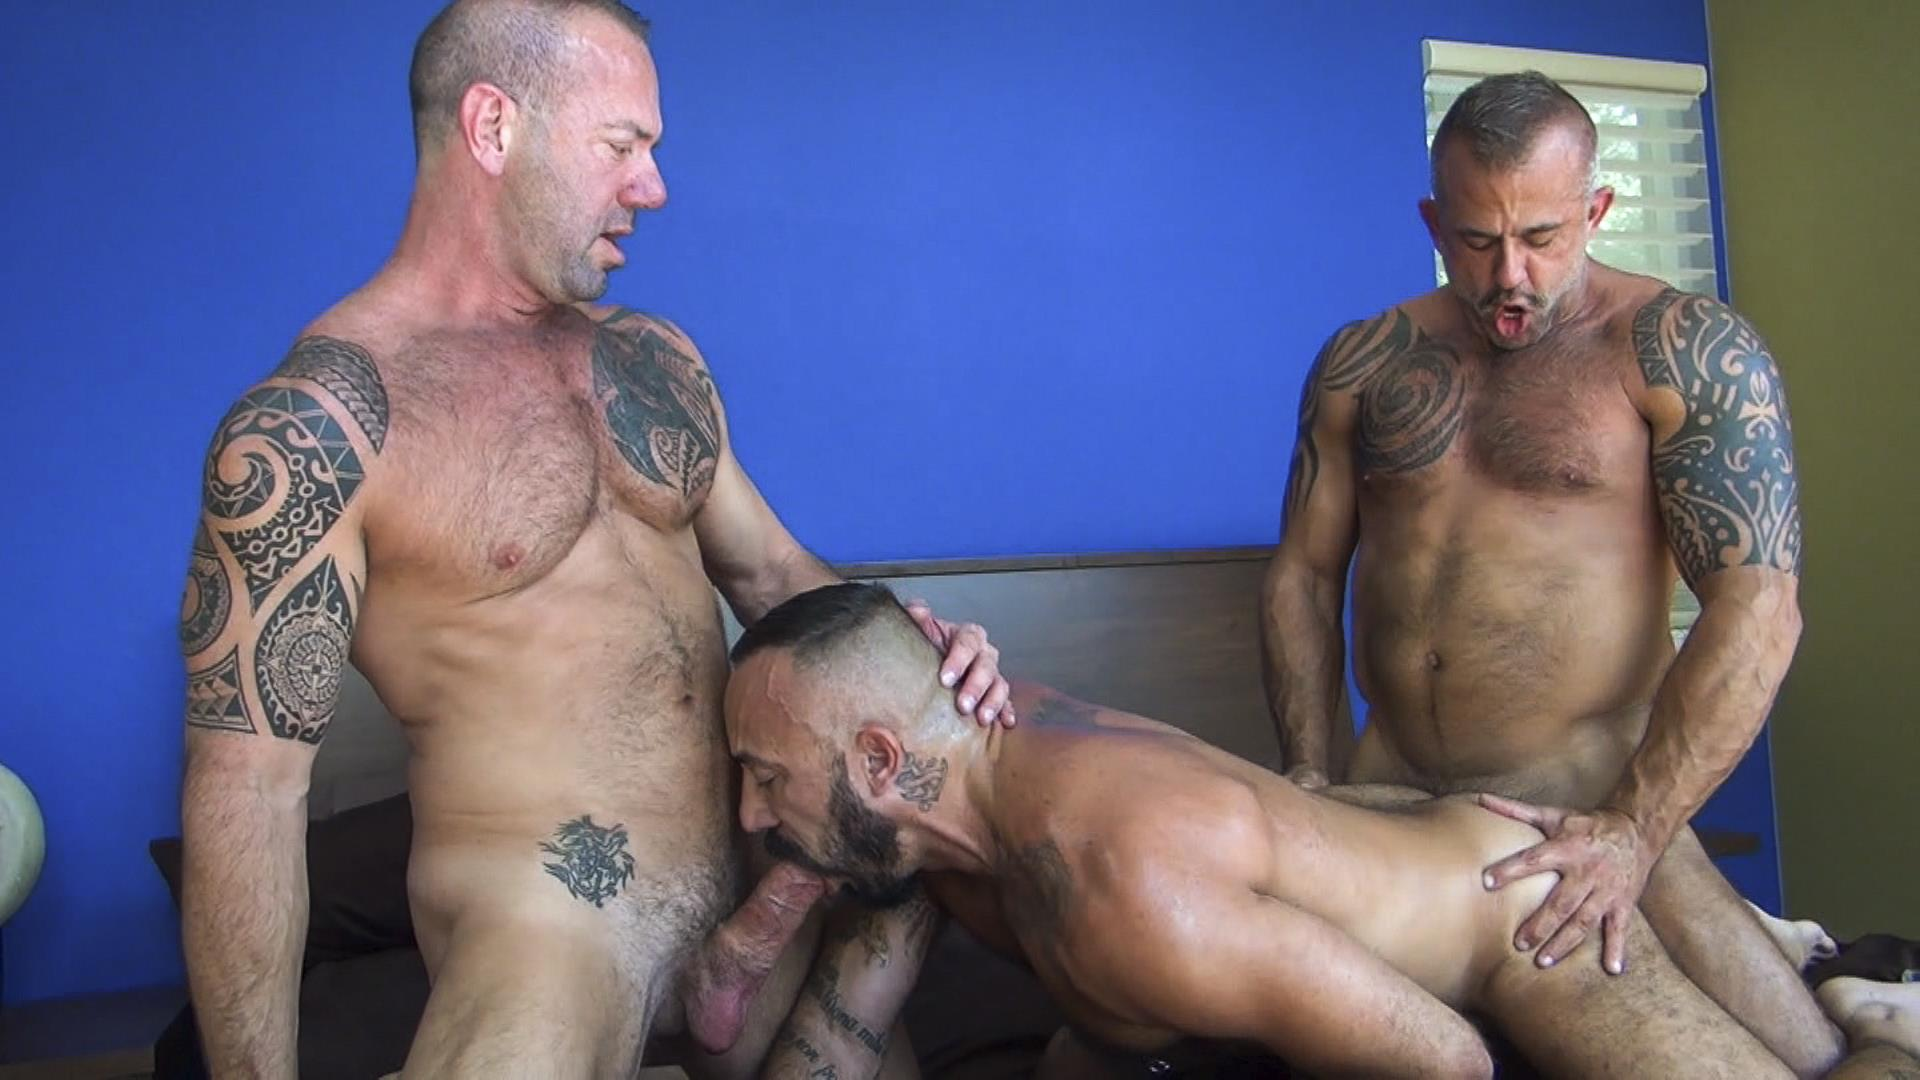 Raw Fuck Club Alessio Romero and Jon Galt and Vic Rocco Hairy Muscle Daddy Bareback Amateur Gay Porn 8 Hairy Muscle Daddy Threeway Double Bareback Penetration